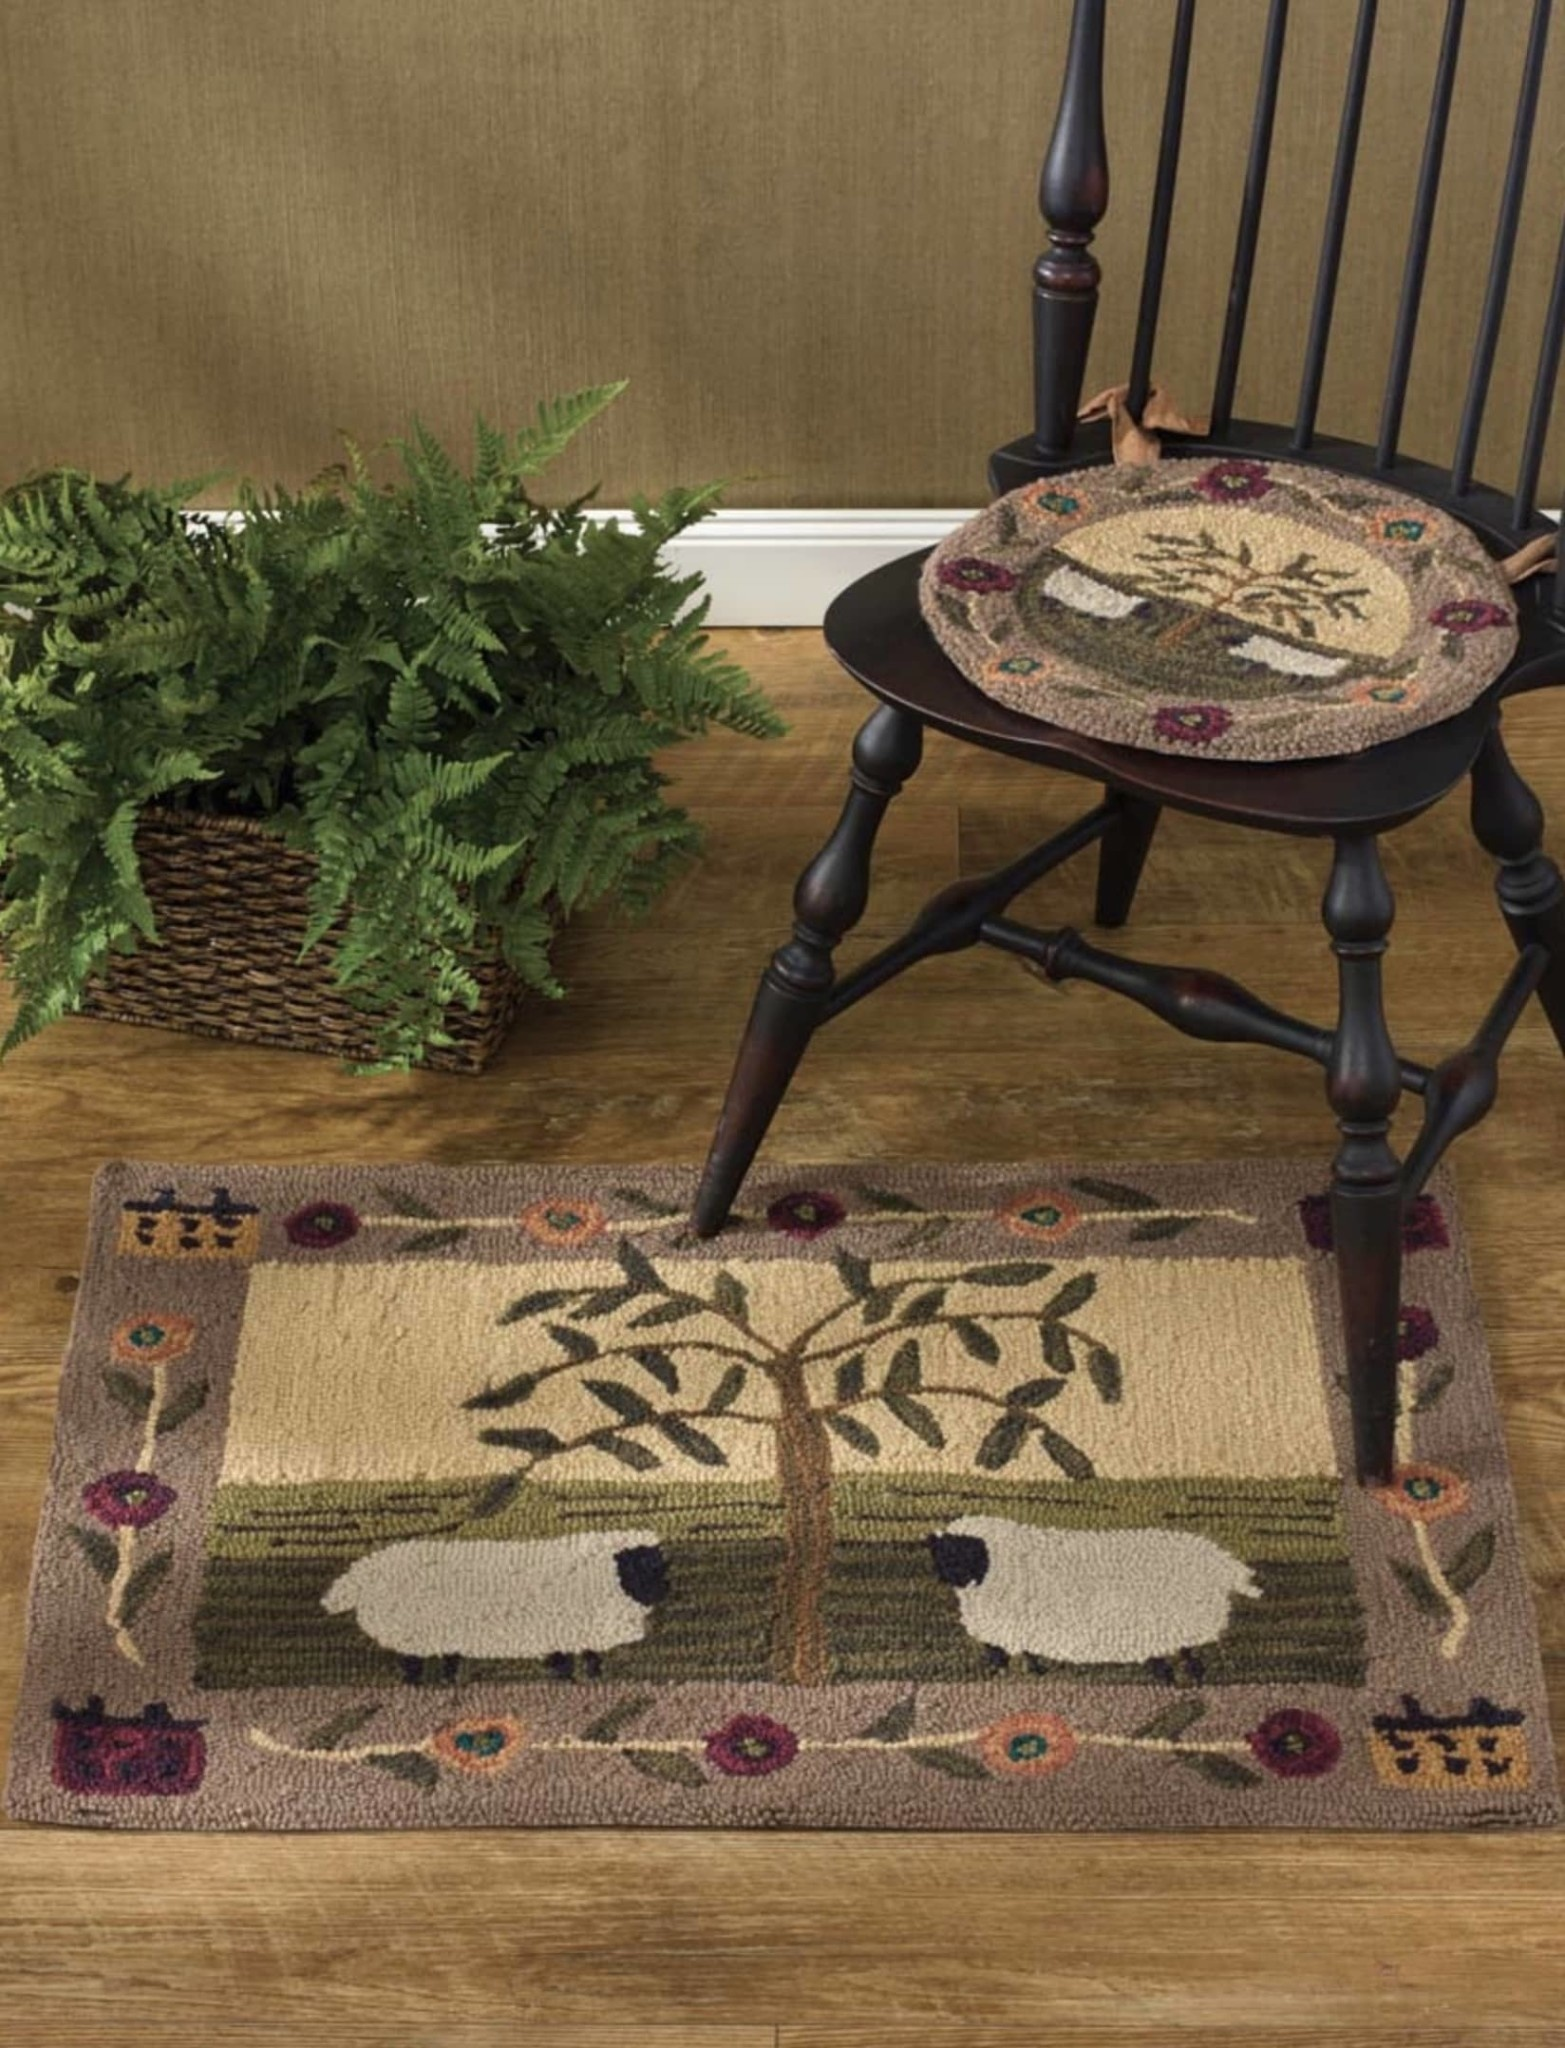 Park Designs Willow Sheep Hooked Rug - 24 x 36